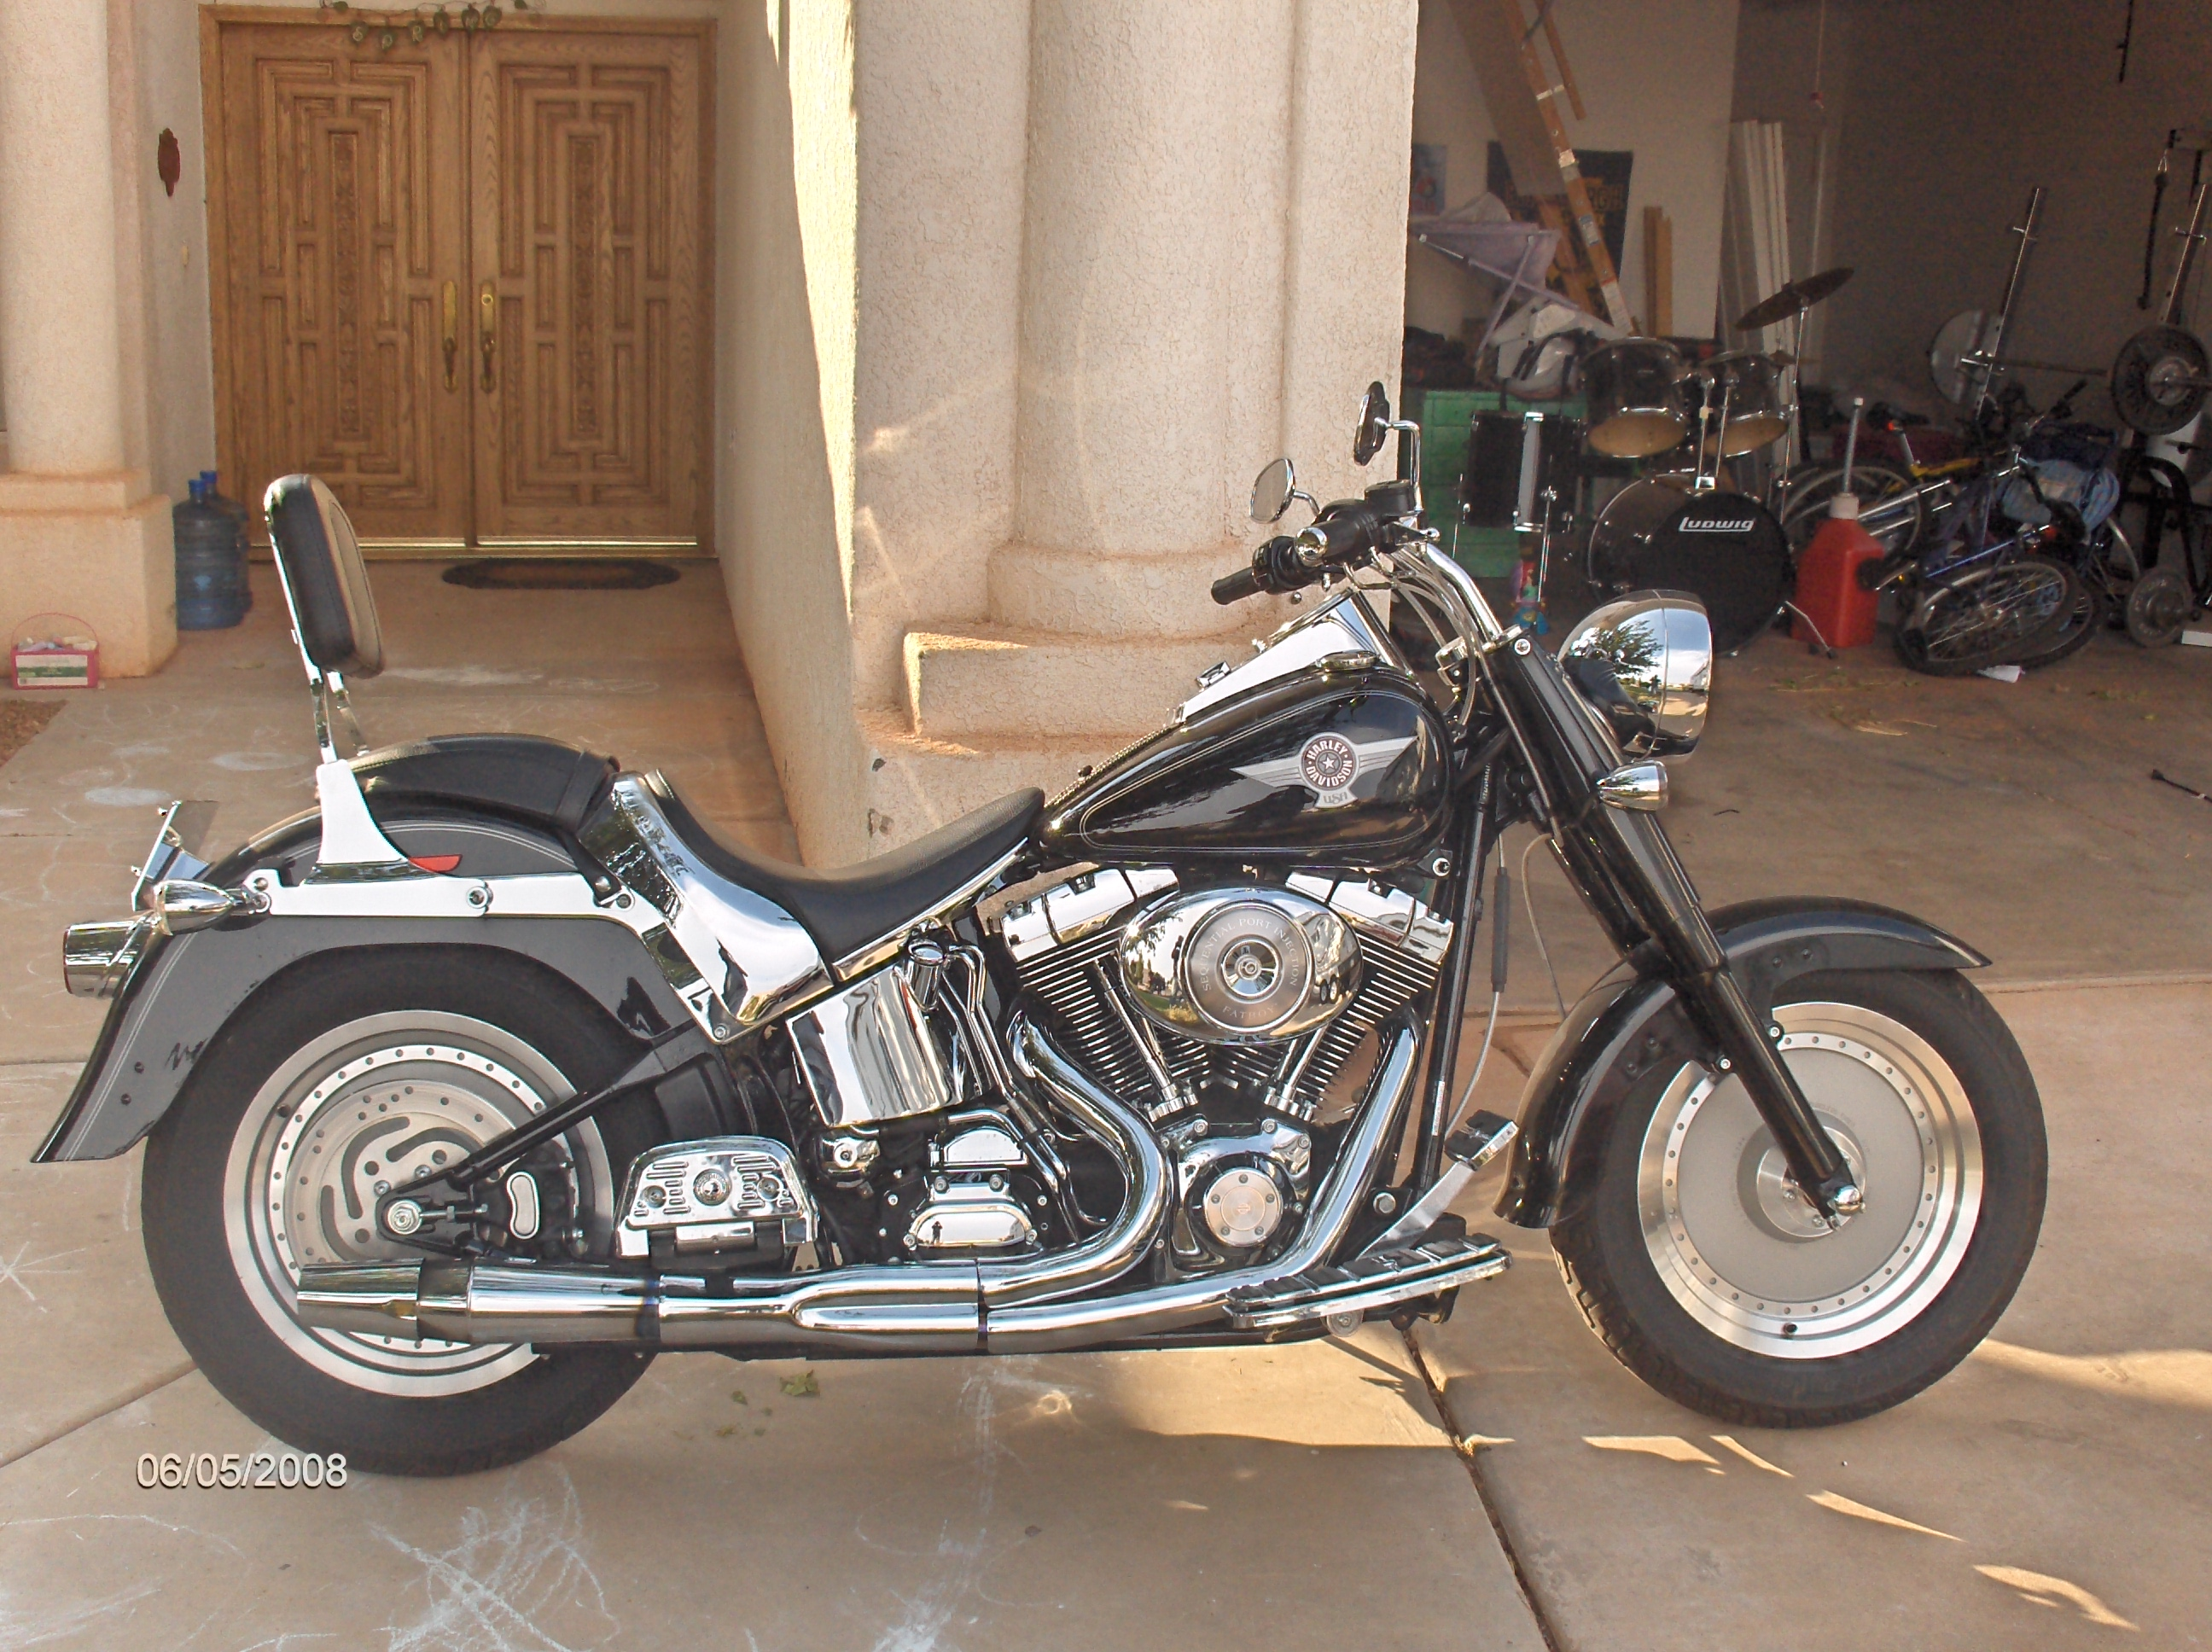 2006 FLSTFI Fat Boy